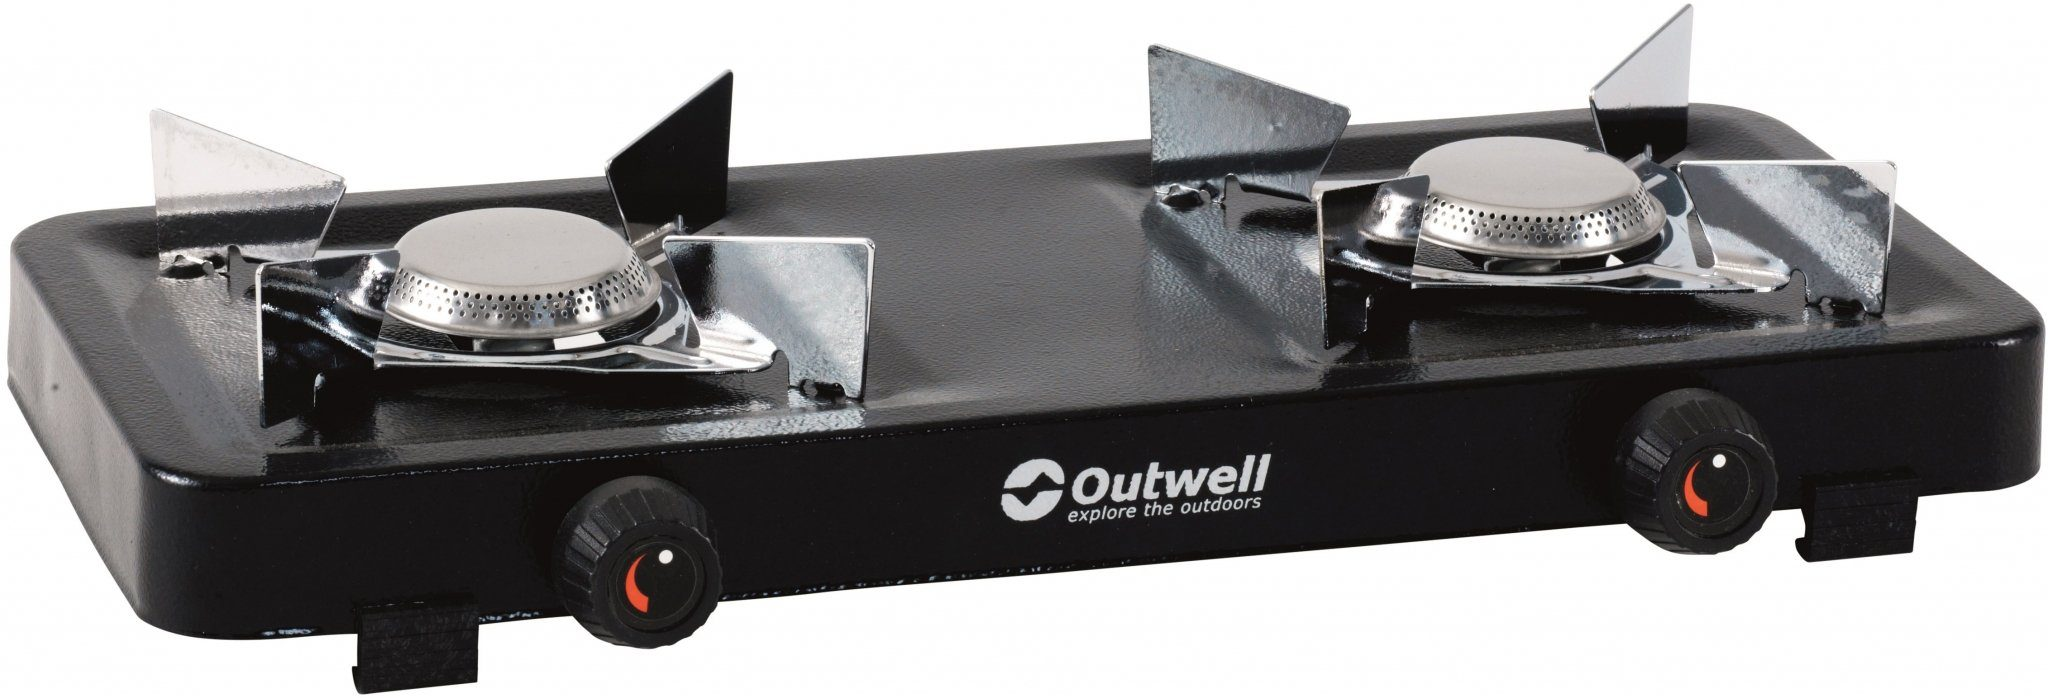 Outwell Camping-Kocher »Appetizer 2 Burner Folding Stove«